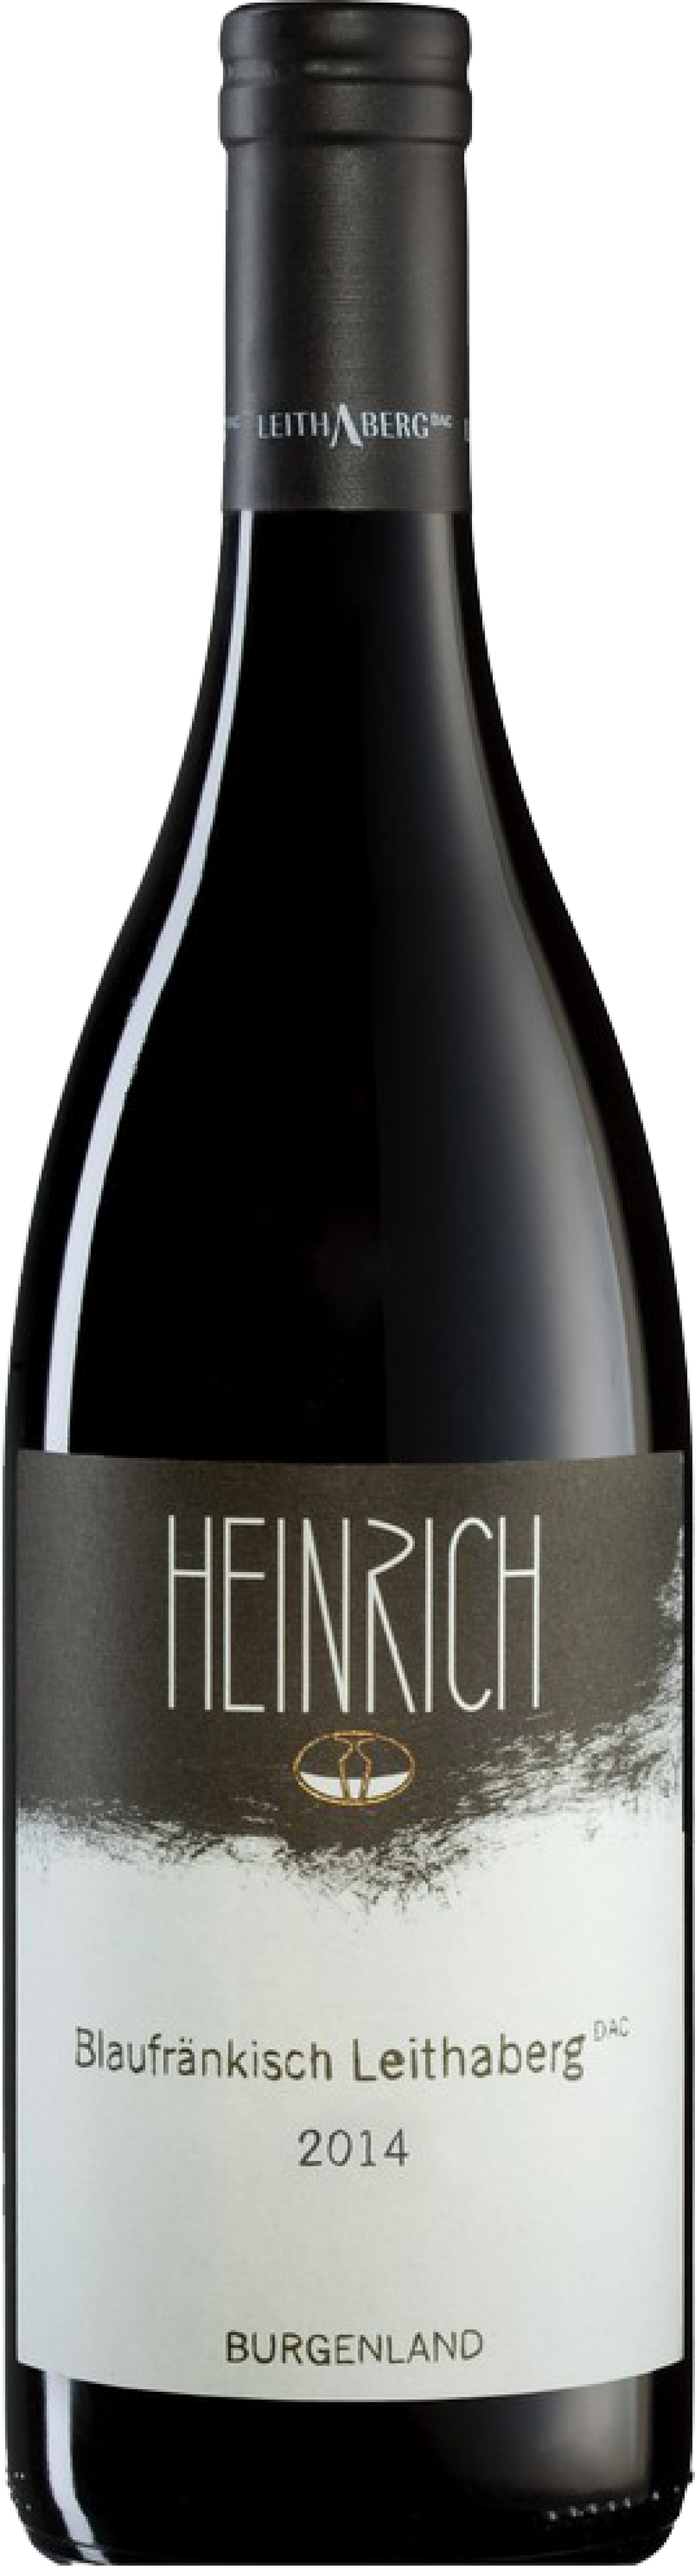 files/images/wines/Austria/gernot-heinrich/2014 blaufrank Leithaberg1.png